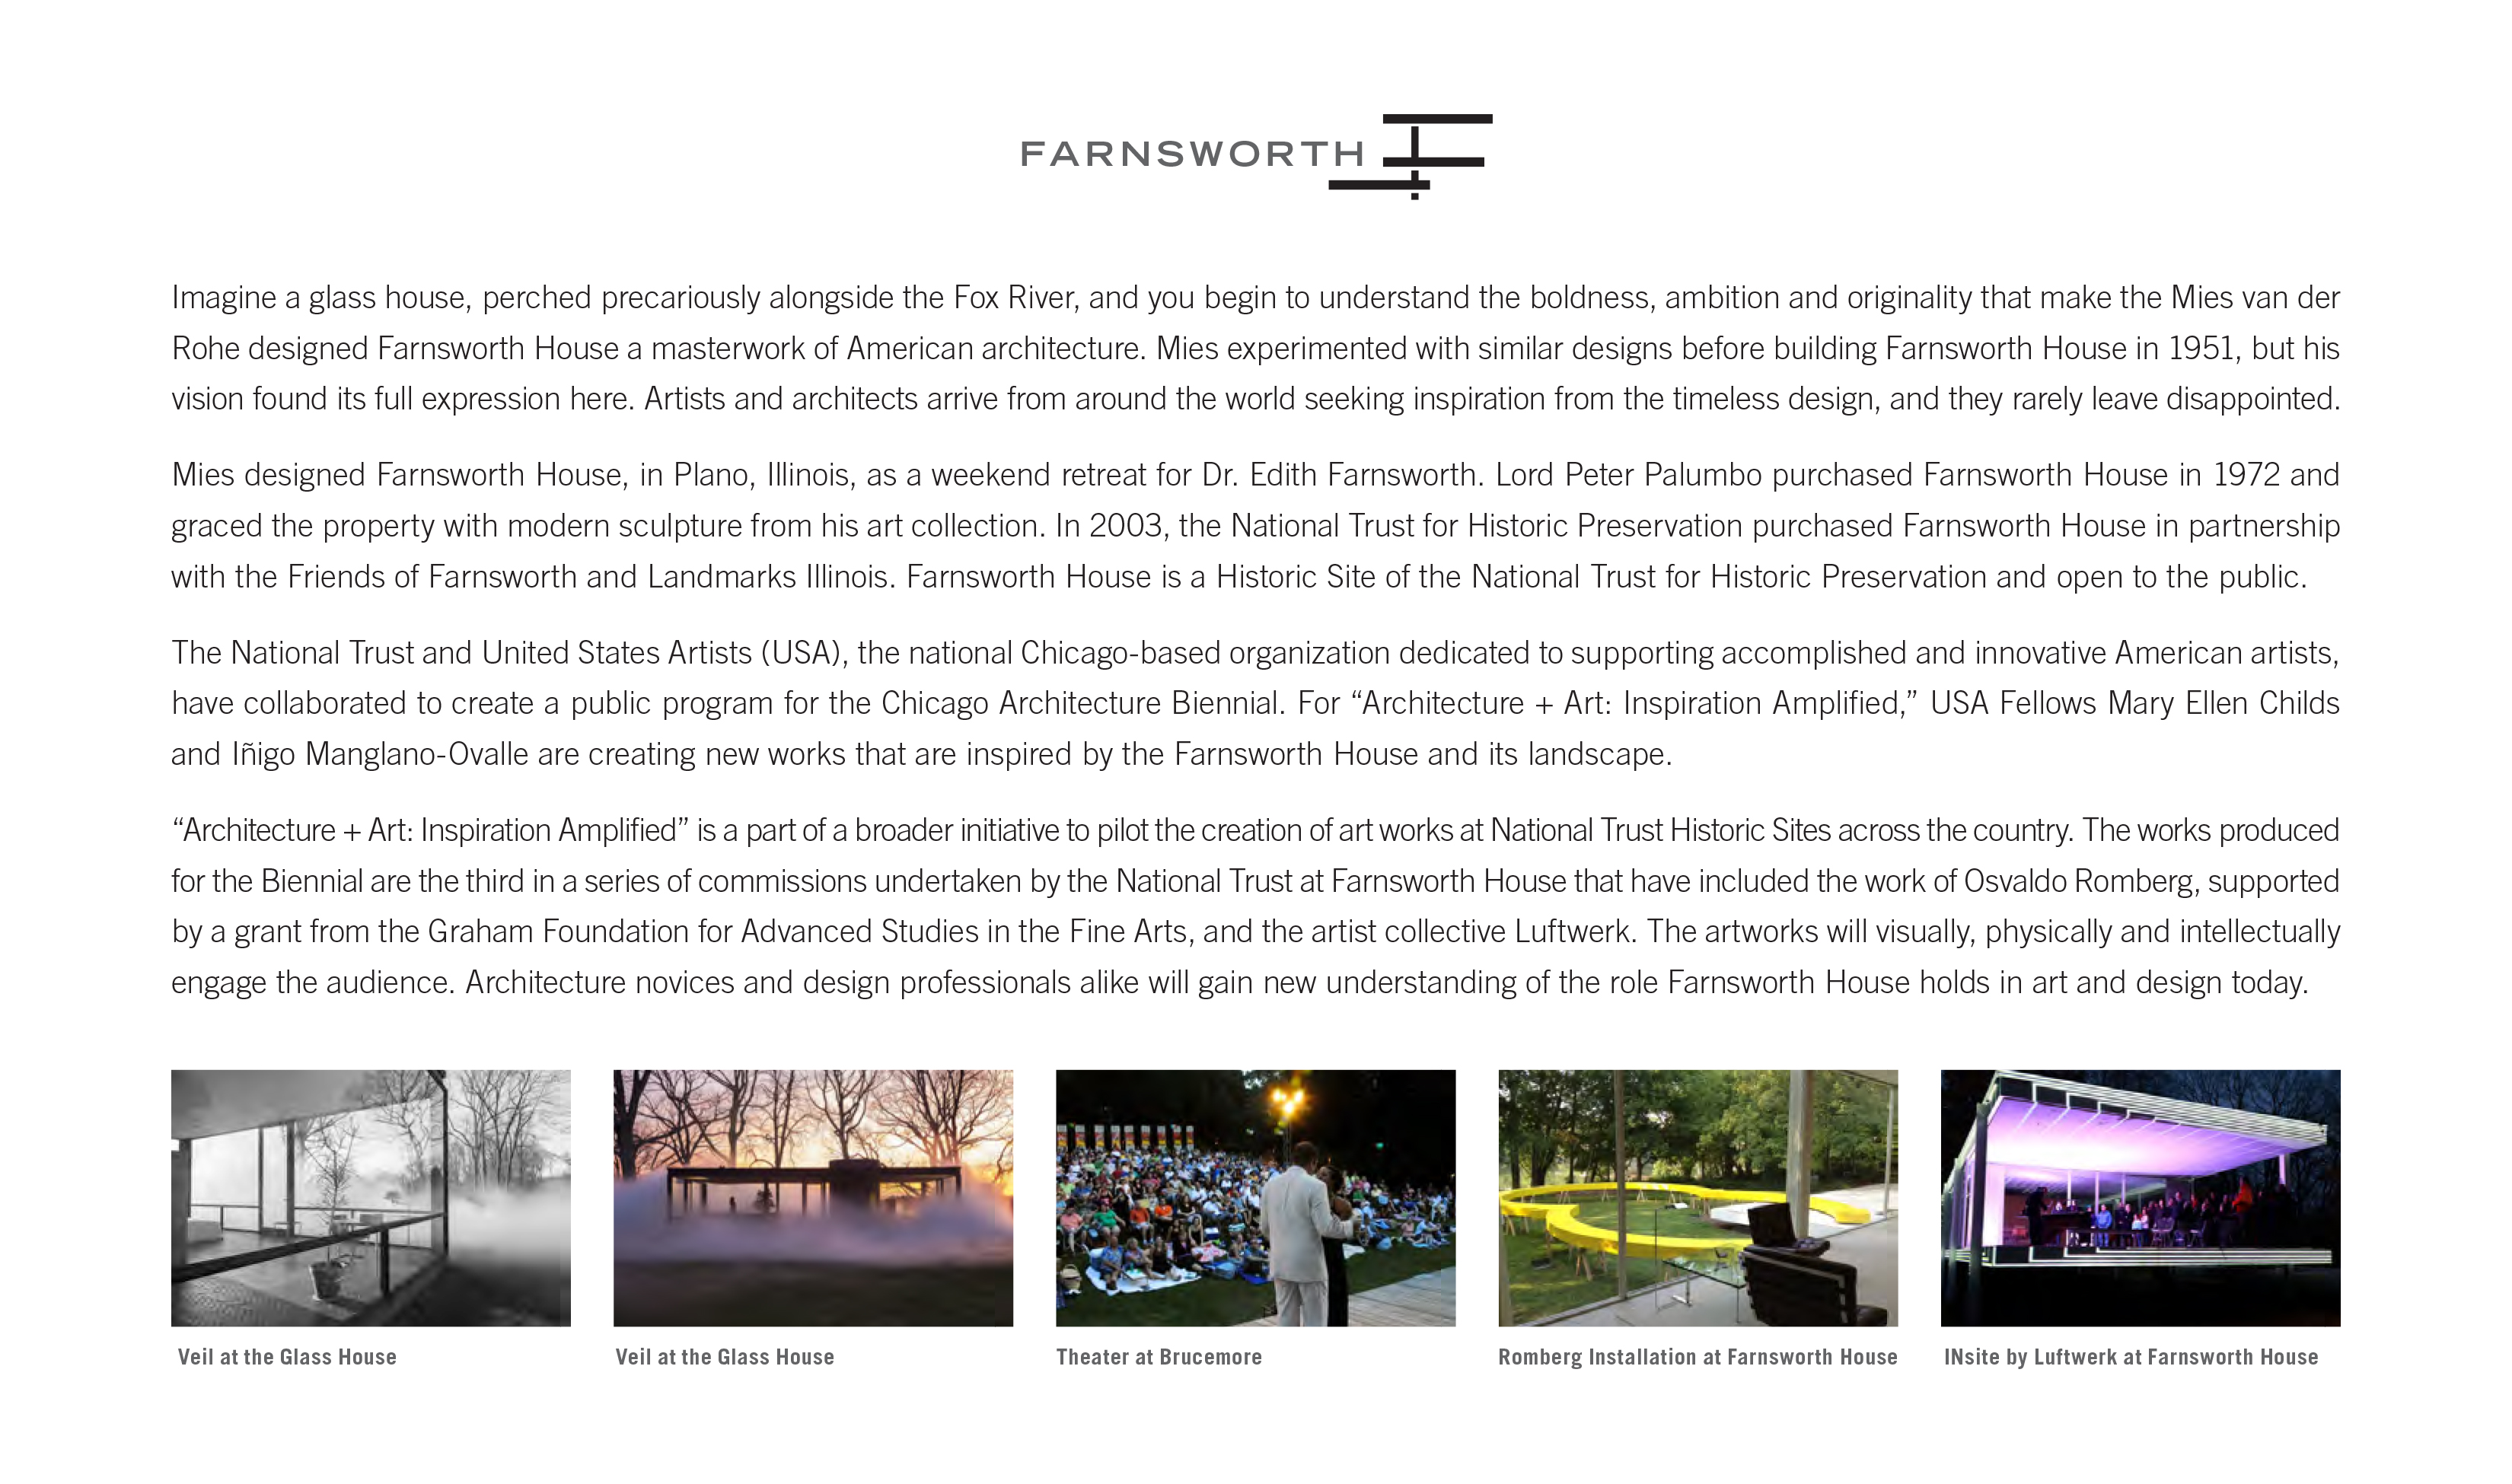 Farnsworth_InstallationsFlyer-2 (2)